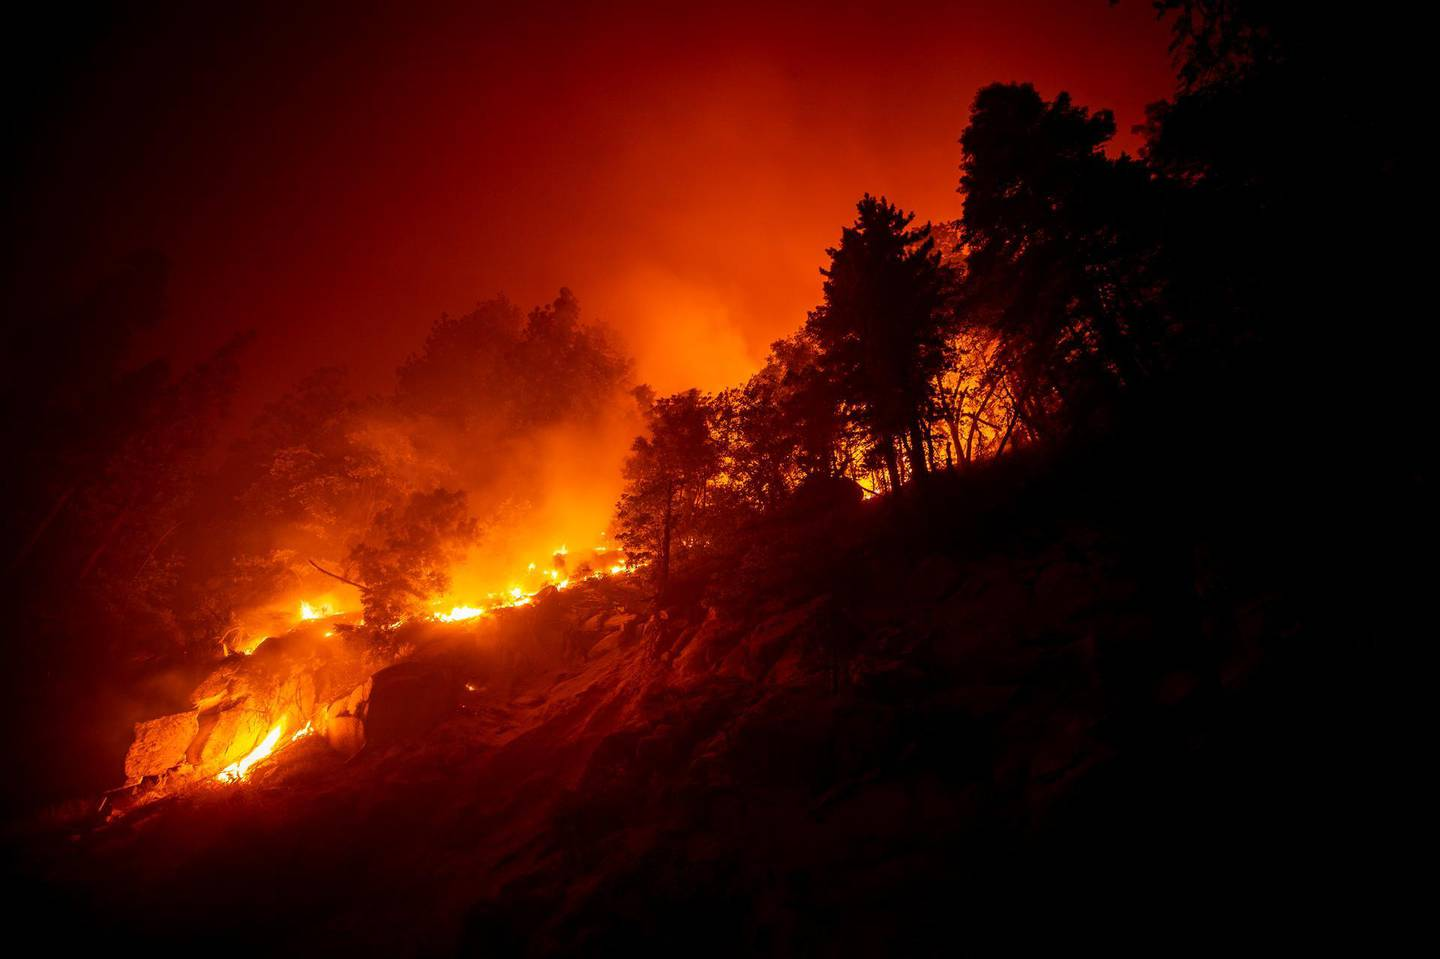 epa08669819 The Castle Fire burns in a slope next to the 190 highway in the Sequoia National Forest prompting evacuations, between Ponderosa and Camp Nelson, California, USA, 14 September 2020 (issued 15 September 2020). According to reports, the Castle Fire has burnt over 90,000 acres of forest.  EPA/ETIENNE LAURENT